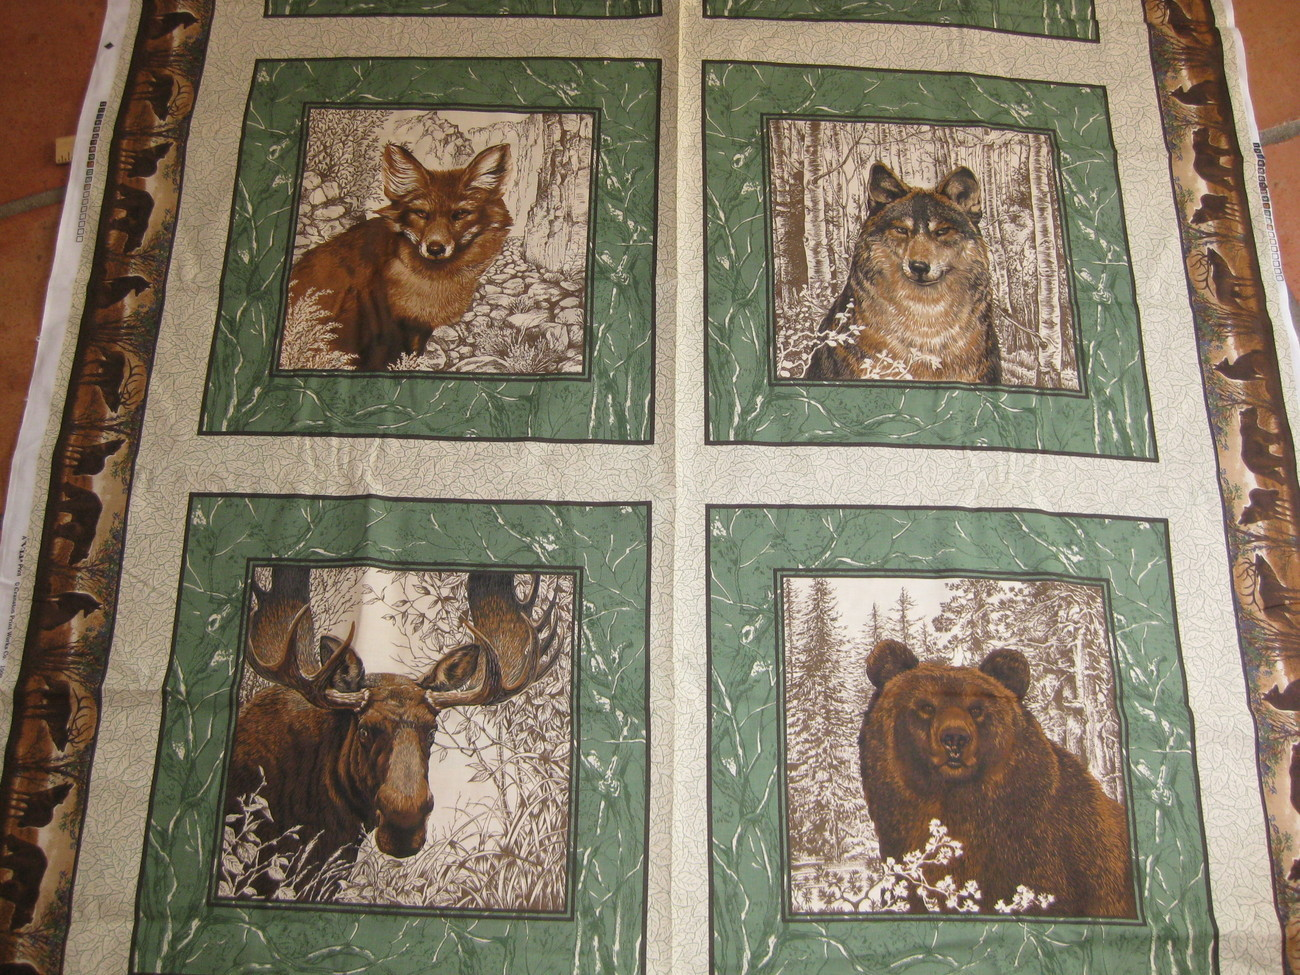 Moose And Bear Fabric http://www.bonanza.com/listings/-VIP-Design-Pillow-Fabric-BEAR-Moose/6929367